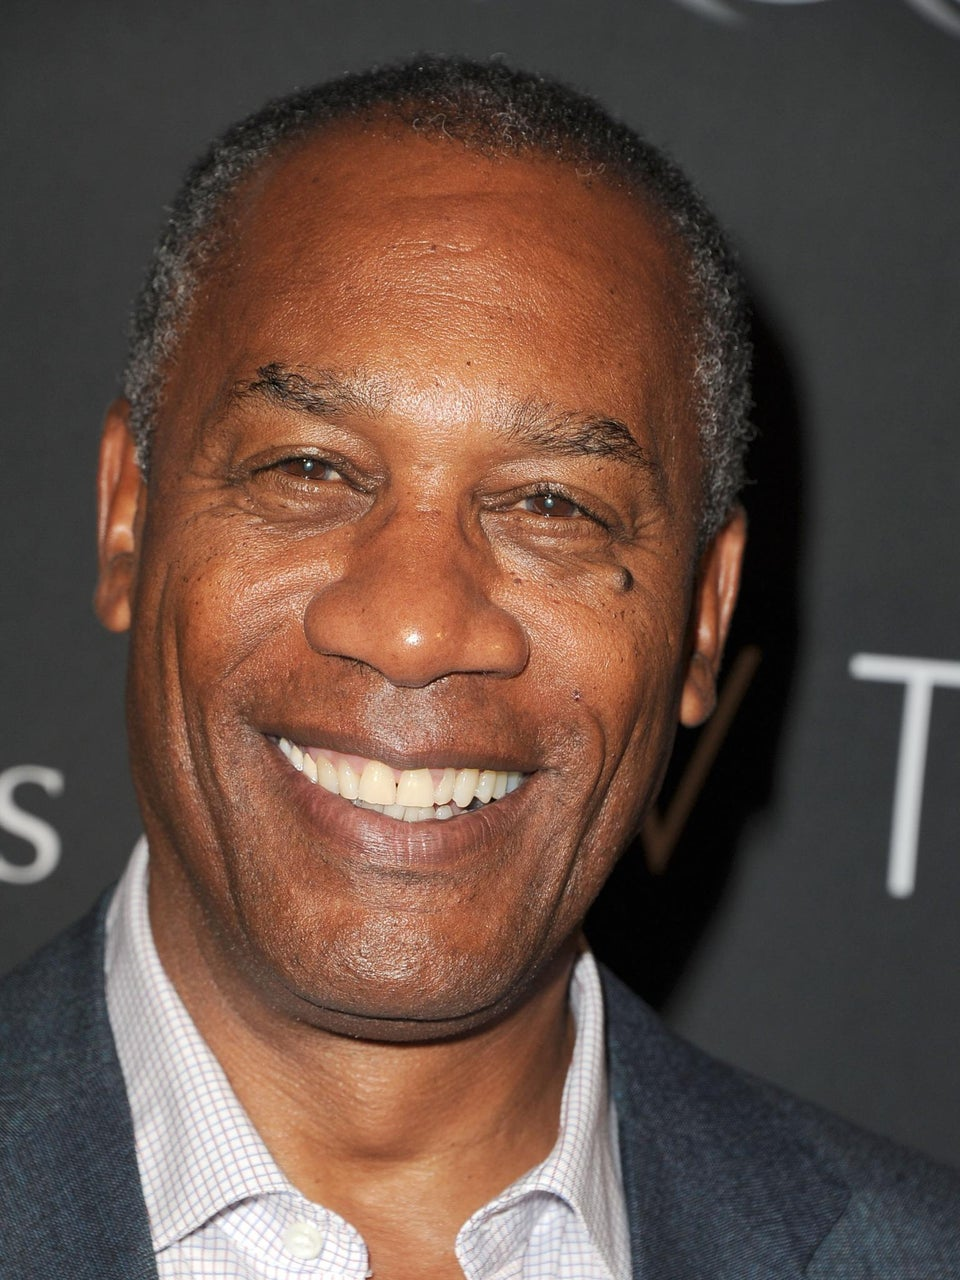 EXCLUSIVE: 'Scandal' Dad Joe Morton on Season 3, TV Daughter Olivia, and Casting 'Mrs. Pope'